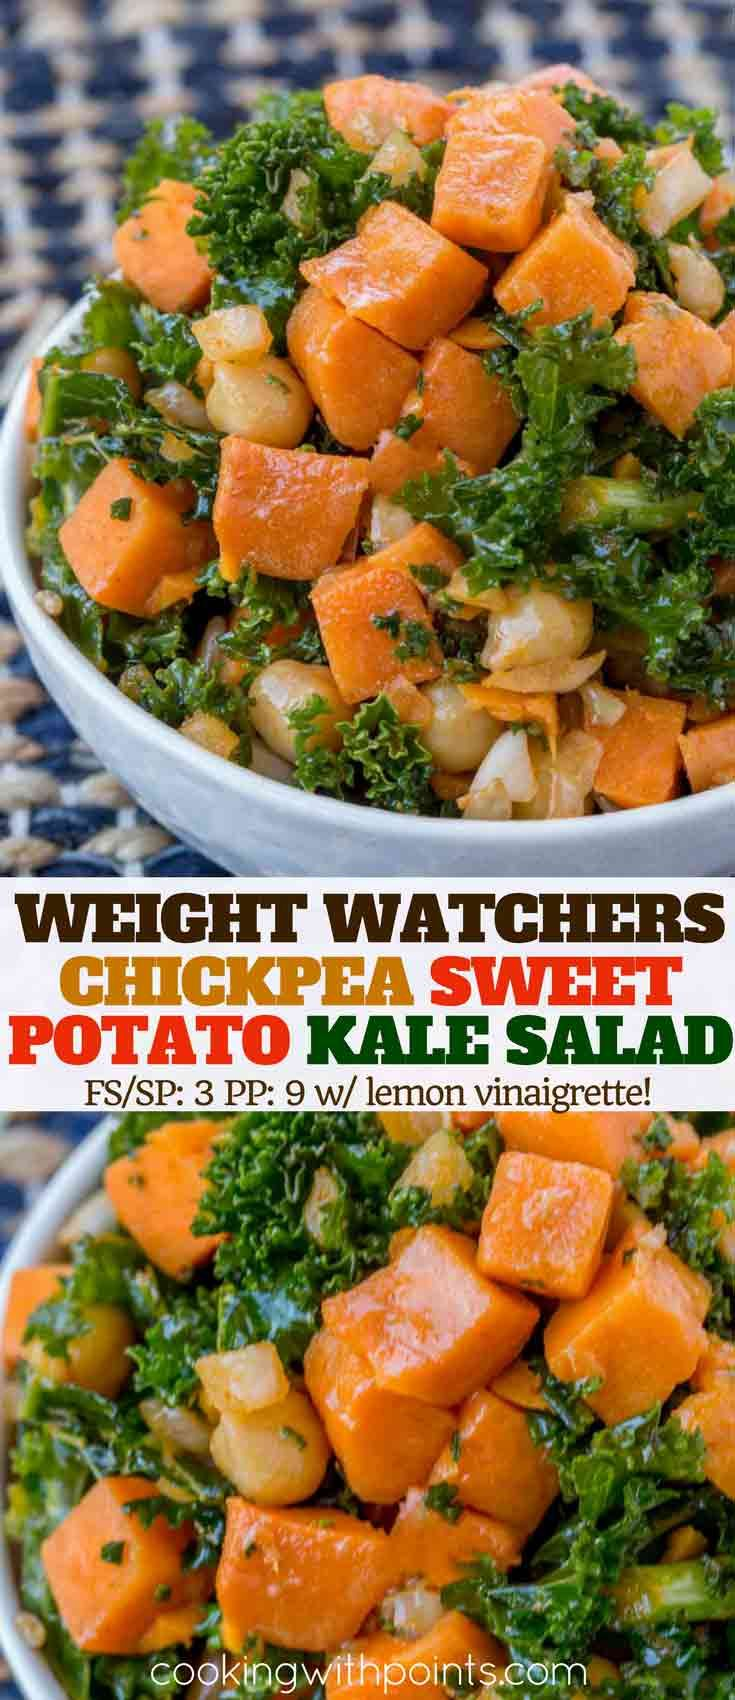 Chickpea Sweet Potato Kale Salad made with a delicious olive oil and lemon vinaigrette is a high protein super healthy lunch option with just 3 smart points per serving.